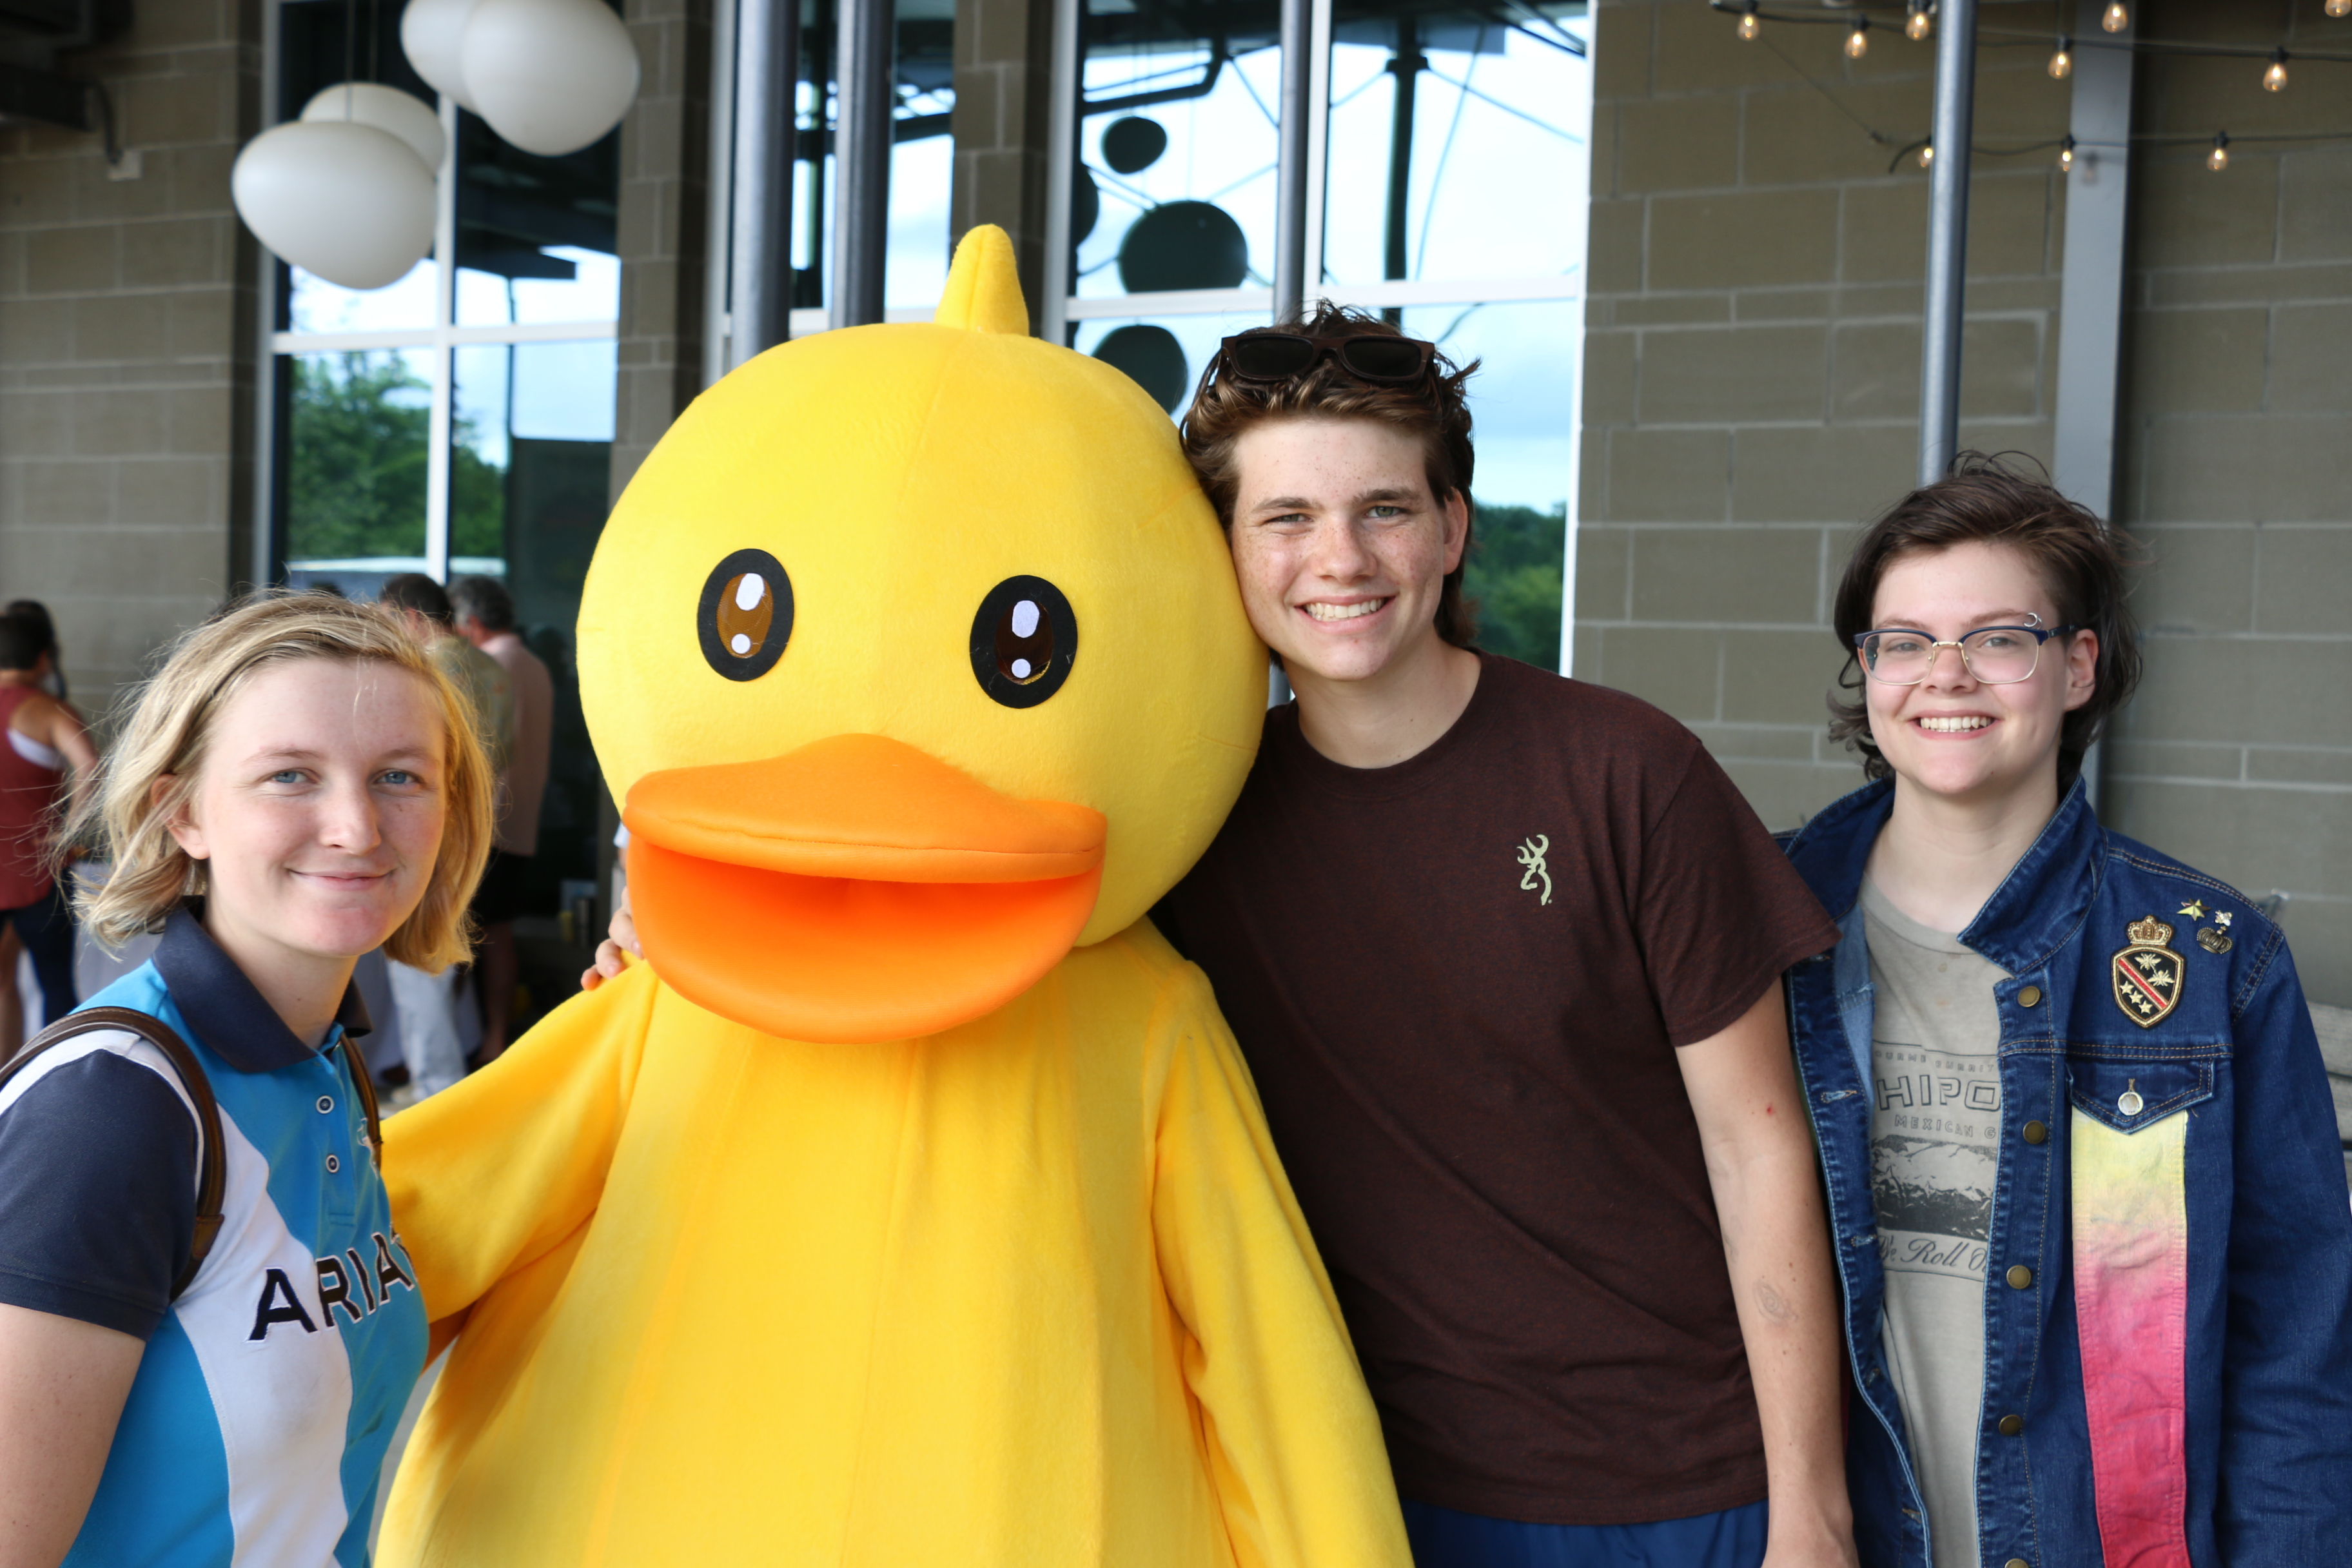 Daniel Island residents Jane Garvey, Ian Jacobs, and Sydney Hindman smile for a picture with the duck mascot.